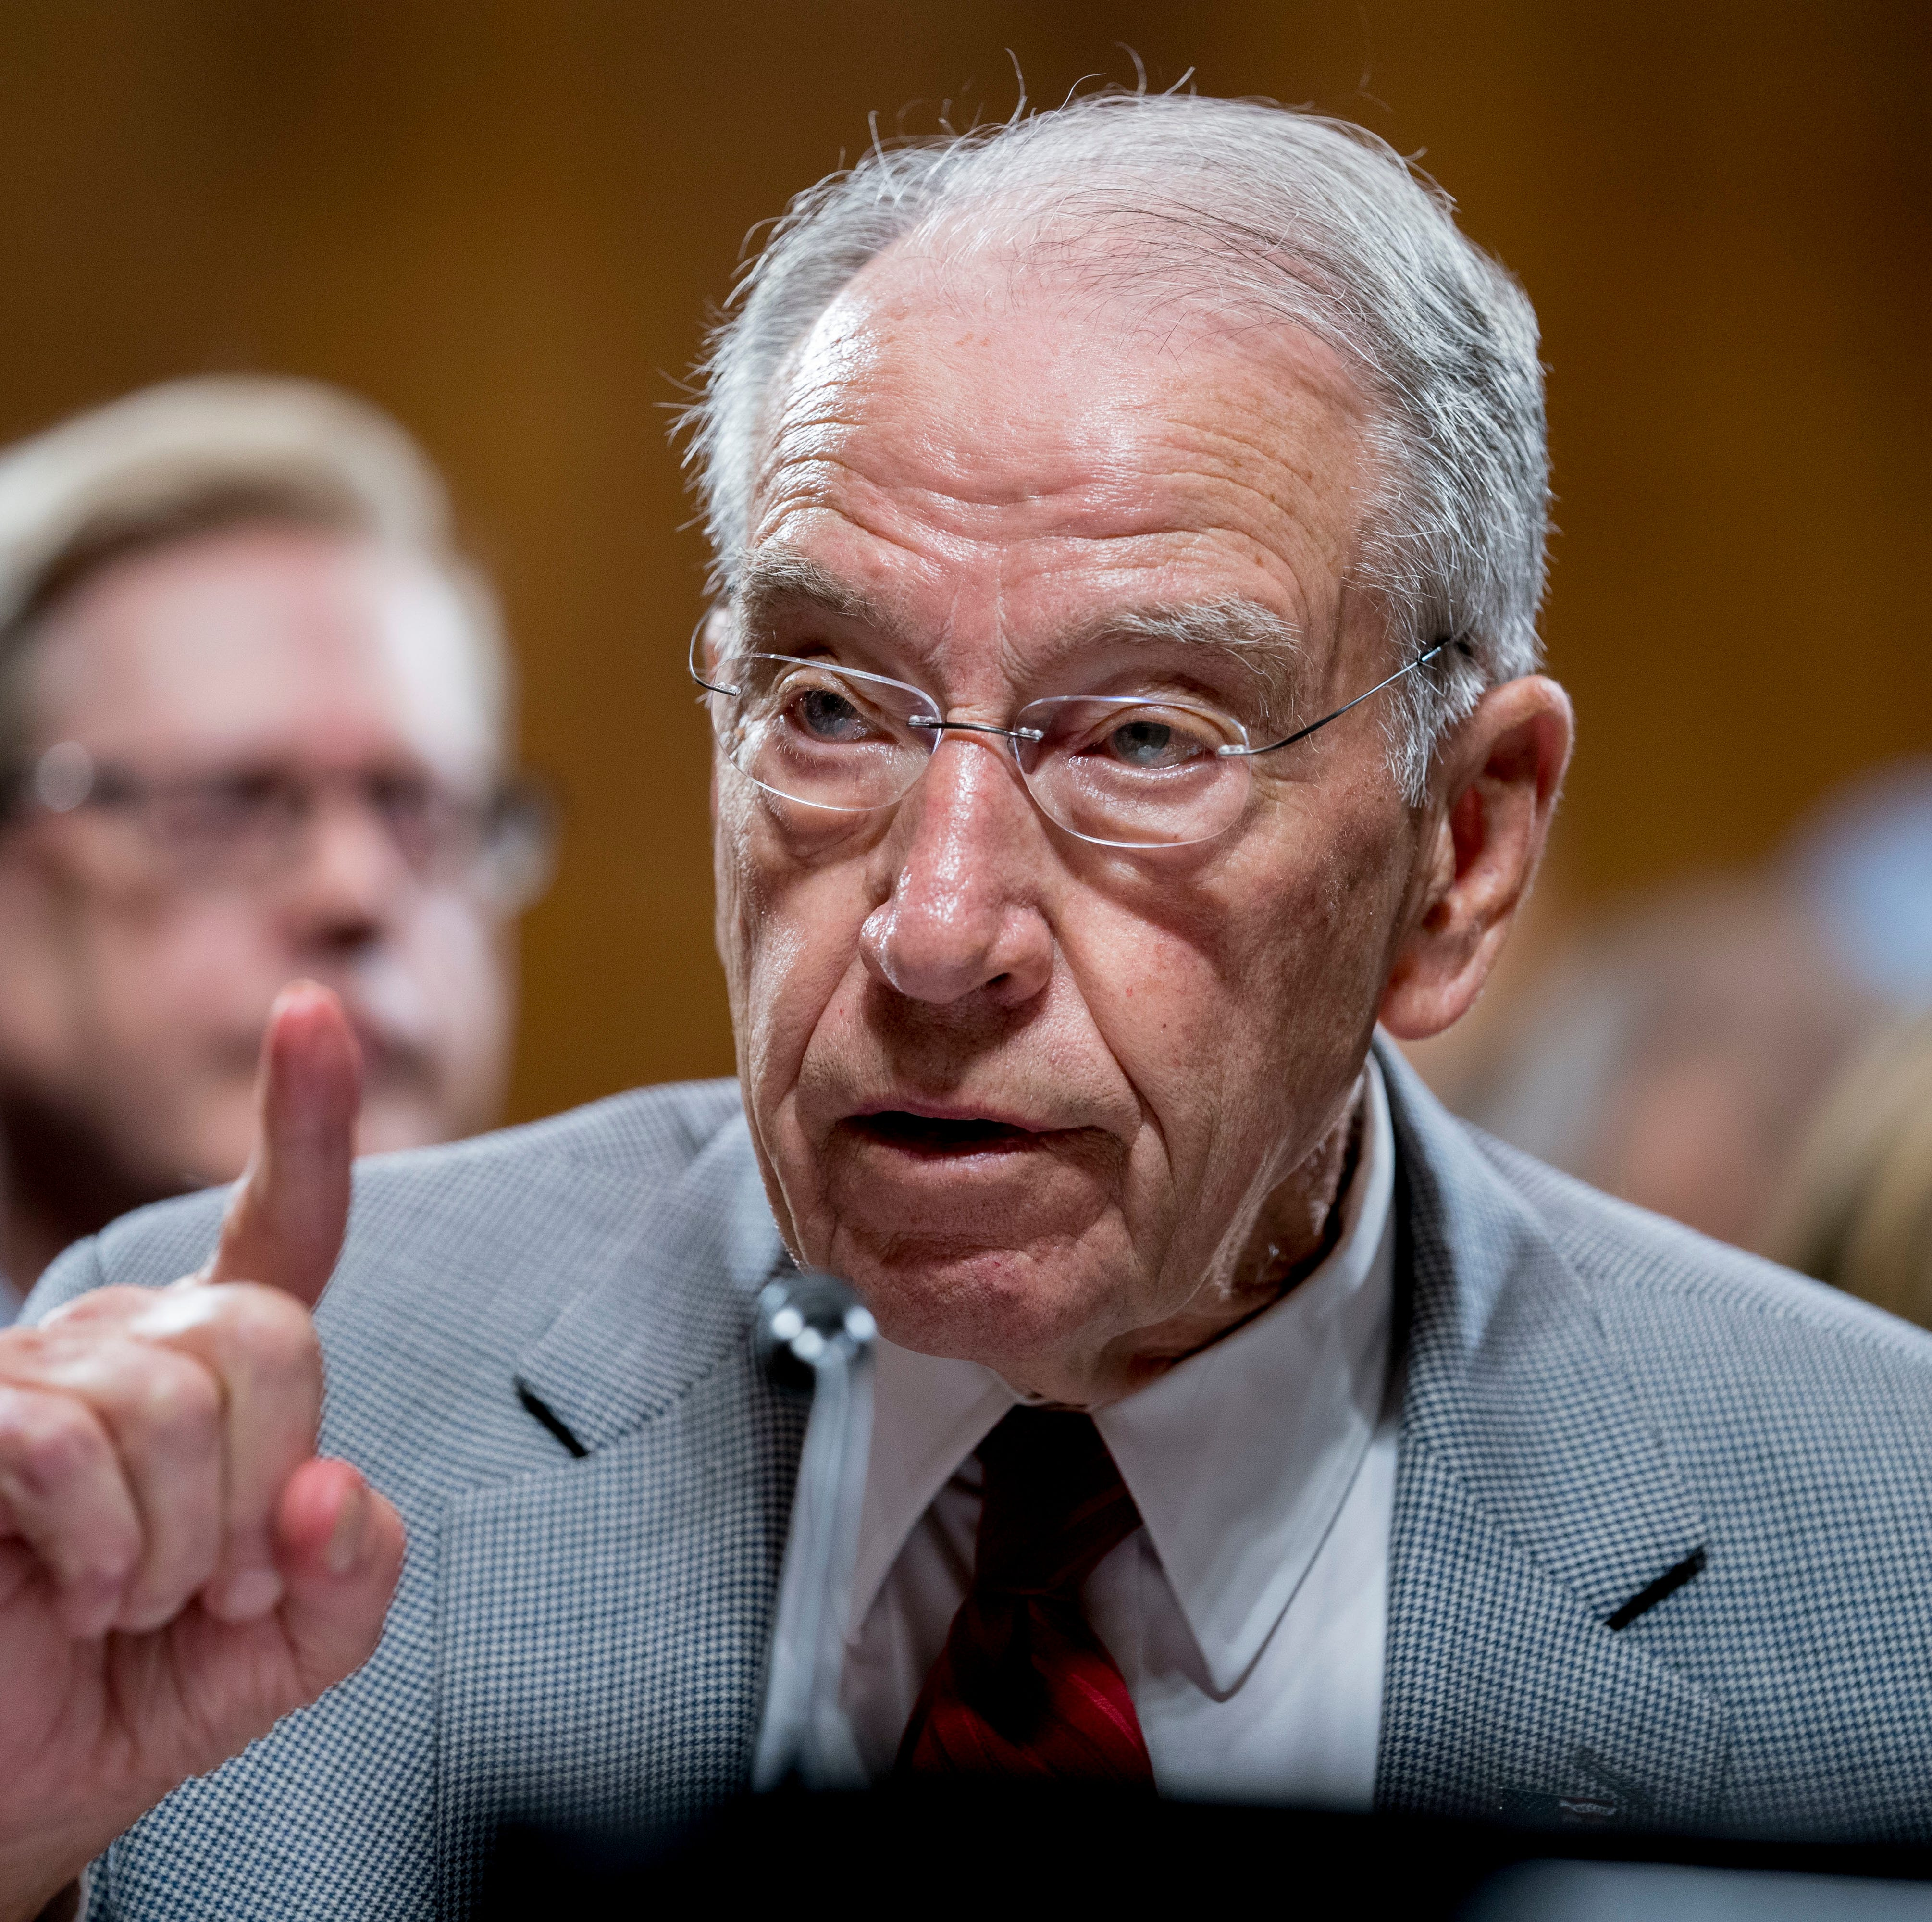 Senate Judiciary Committee Chairman Chuck Grassley, R-Iowa, speaks during a Senate Judiciary Committee markup meeting on Capitol Hill, Thursday, Sept. 13, 2018, in Washington.